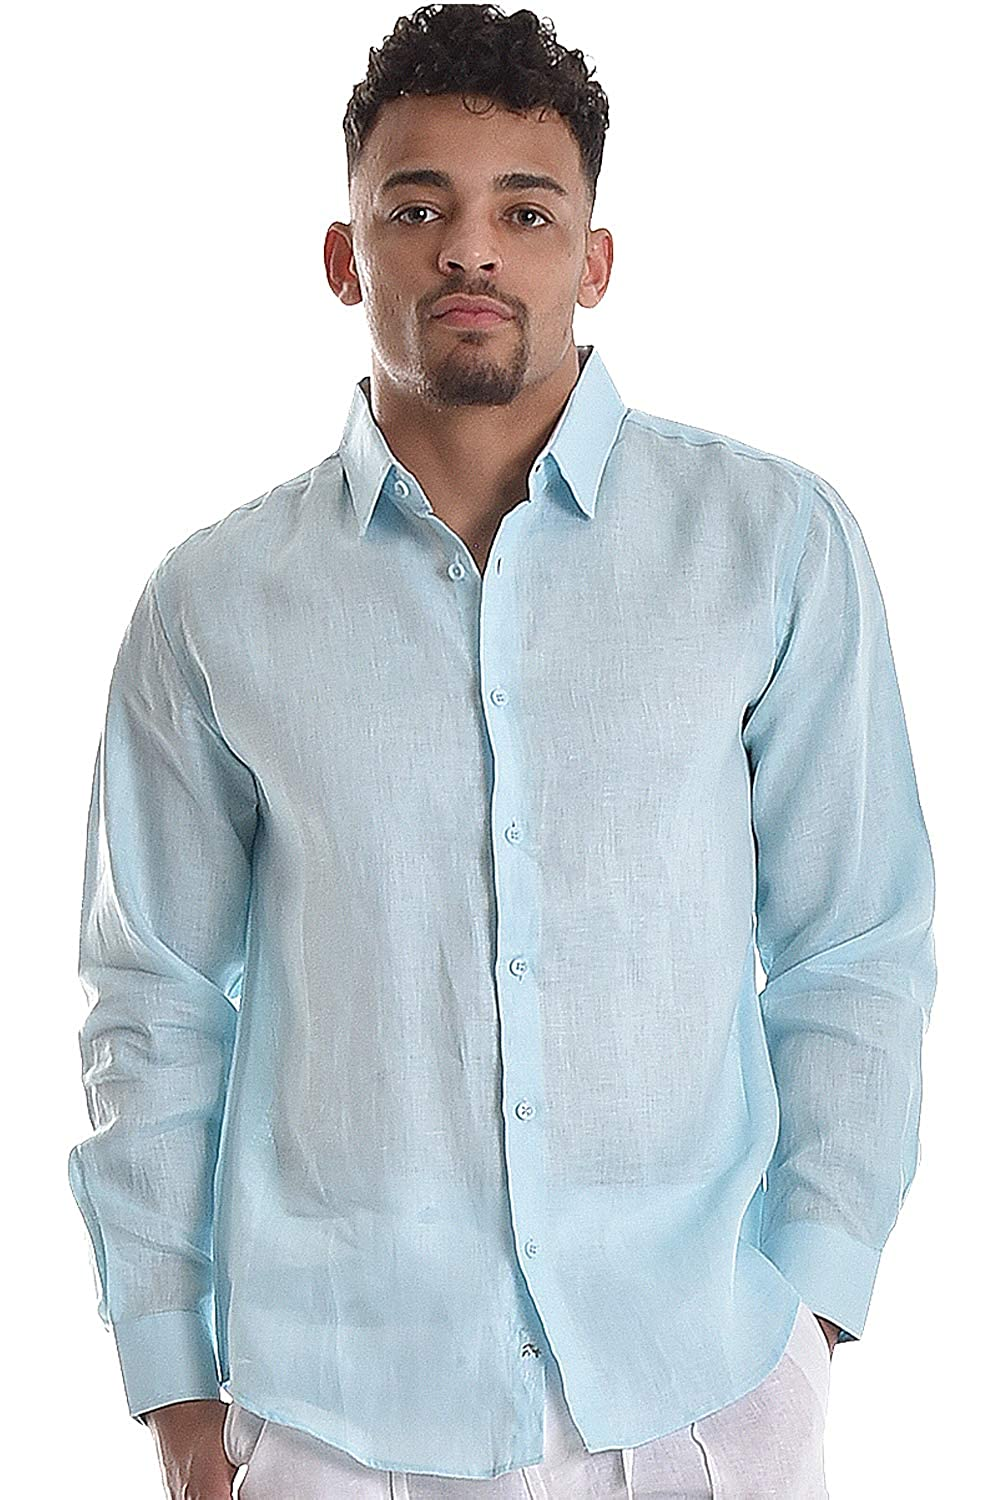 314a15382f bohio Mens 100% Pure Linen White Casual Long Sleeve Shirt (S ~ 4XL) -  MLS744 at Amazon Men's Clothing store: